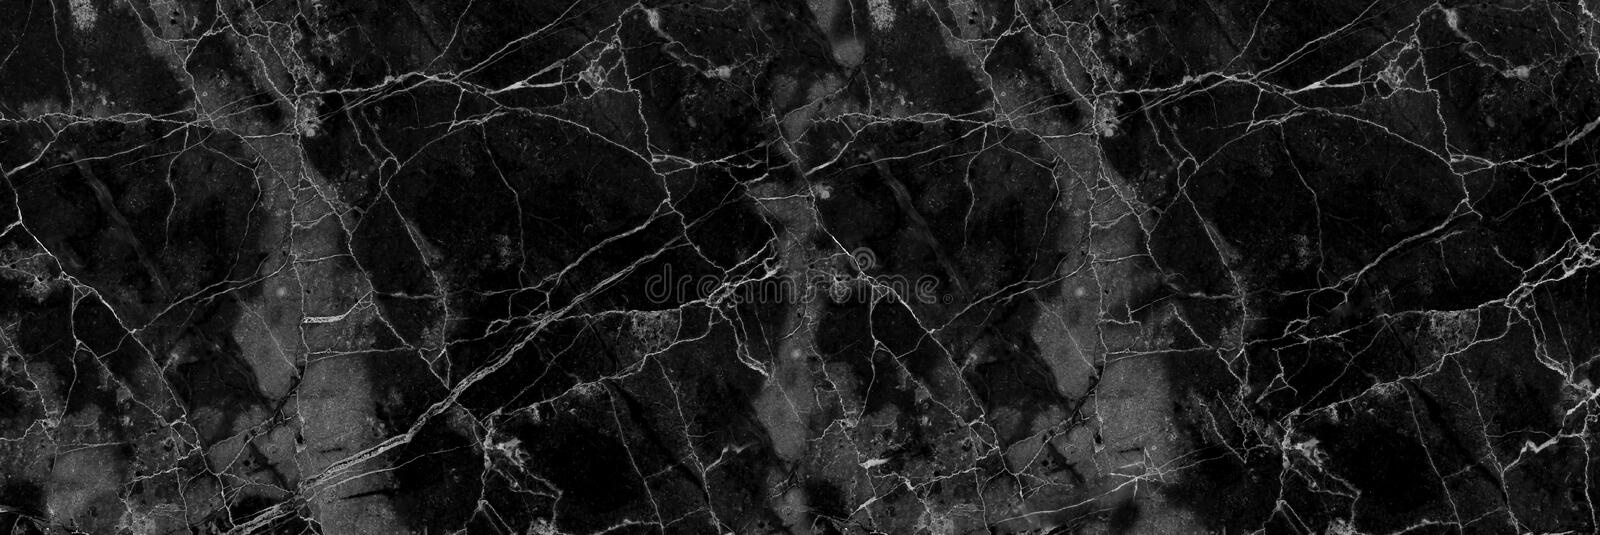 Black marble texture royalty free stock photography